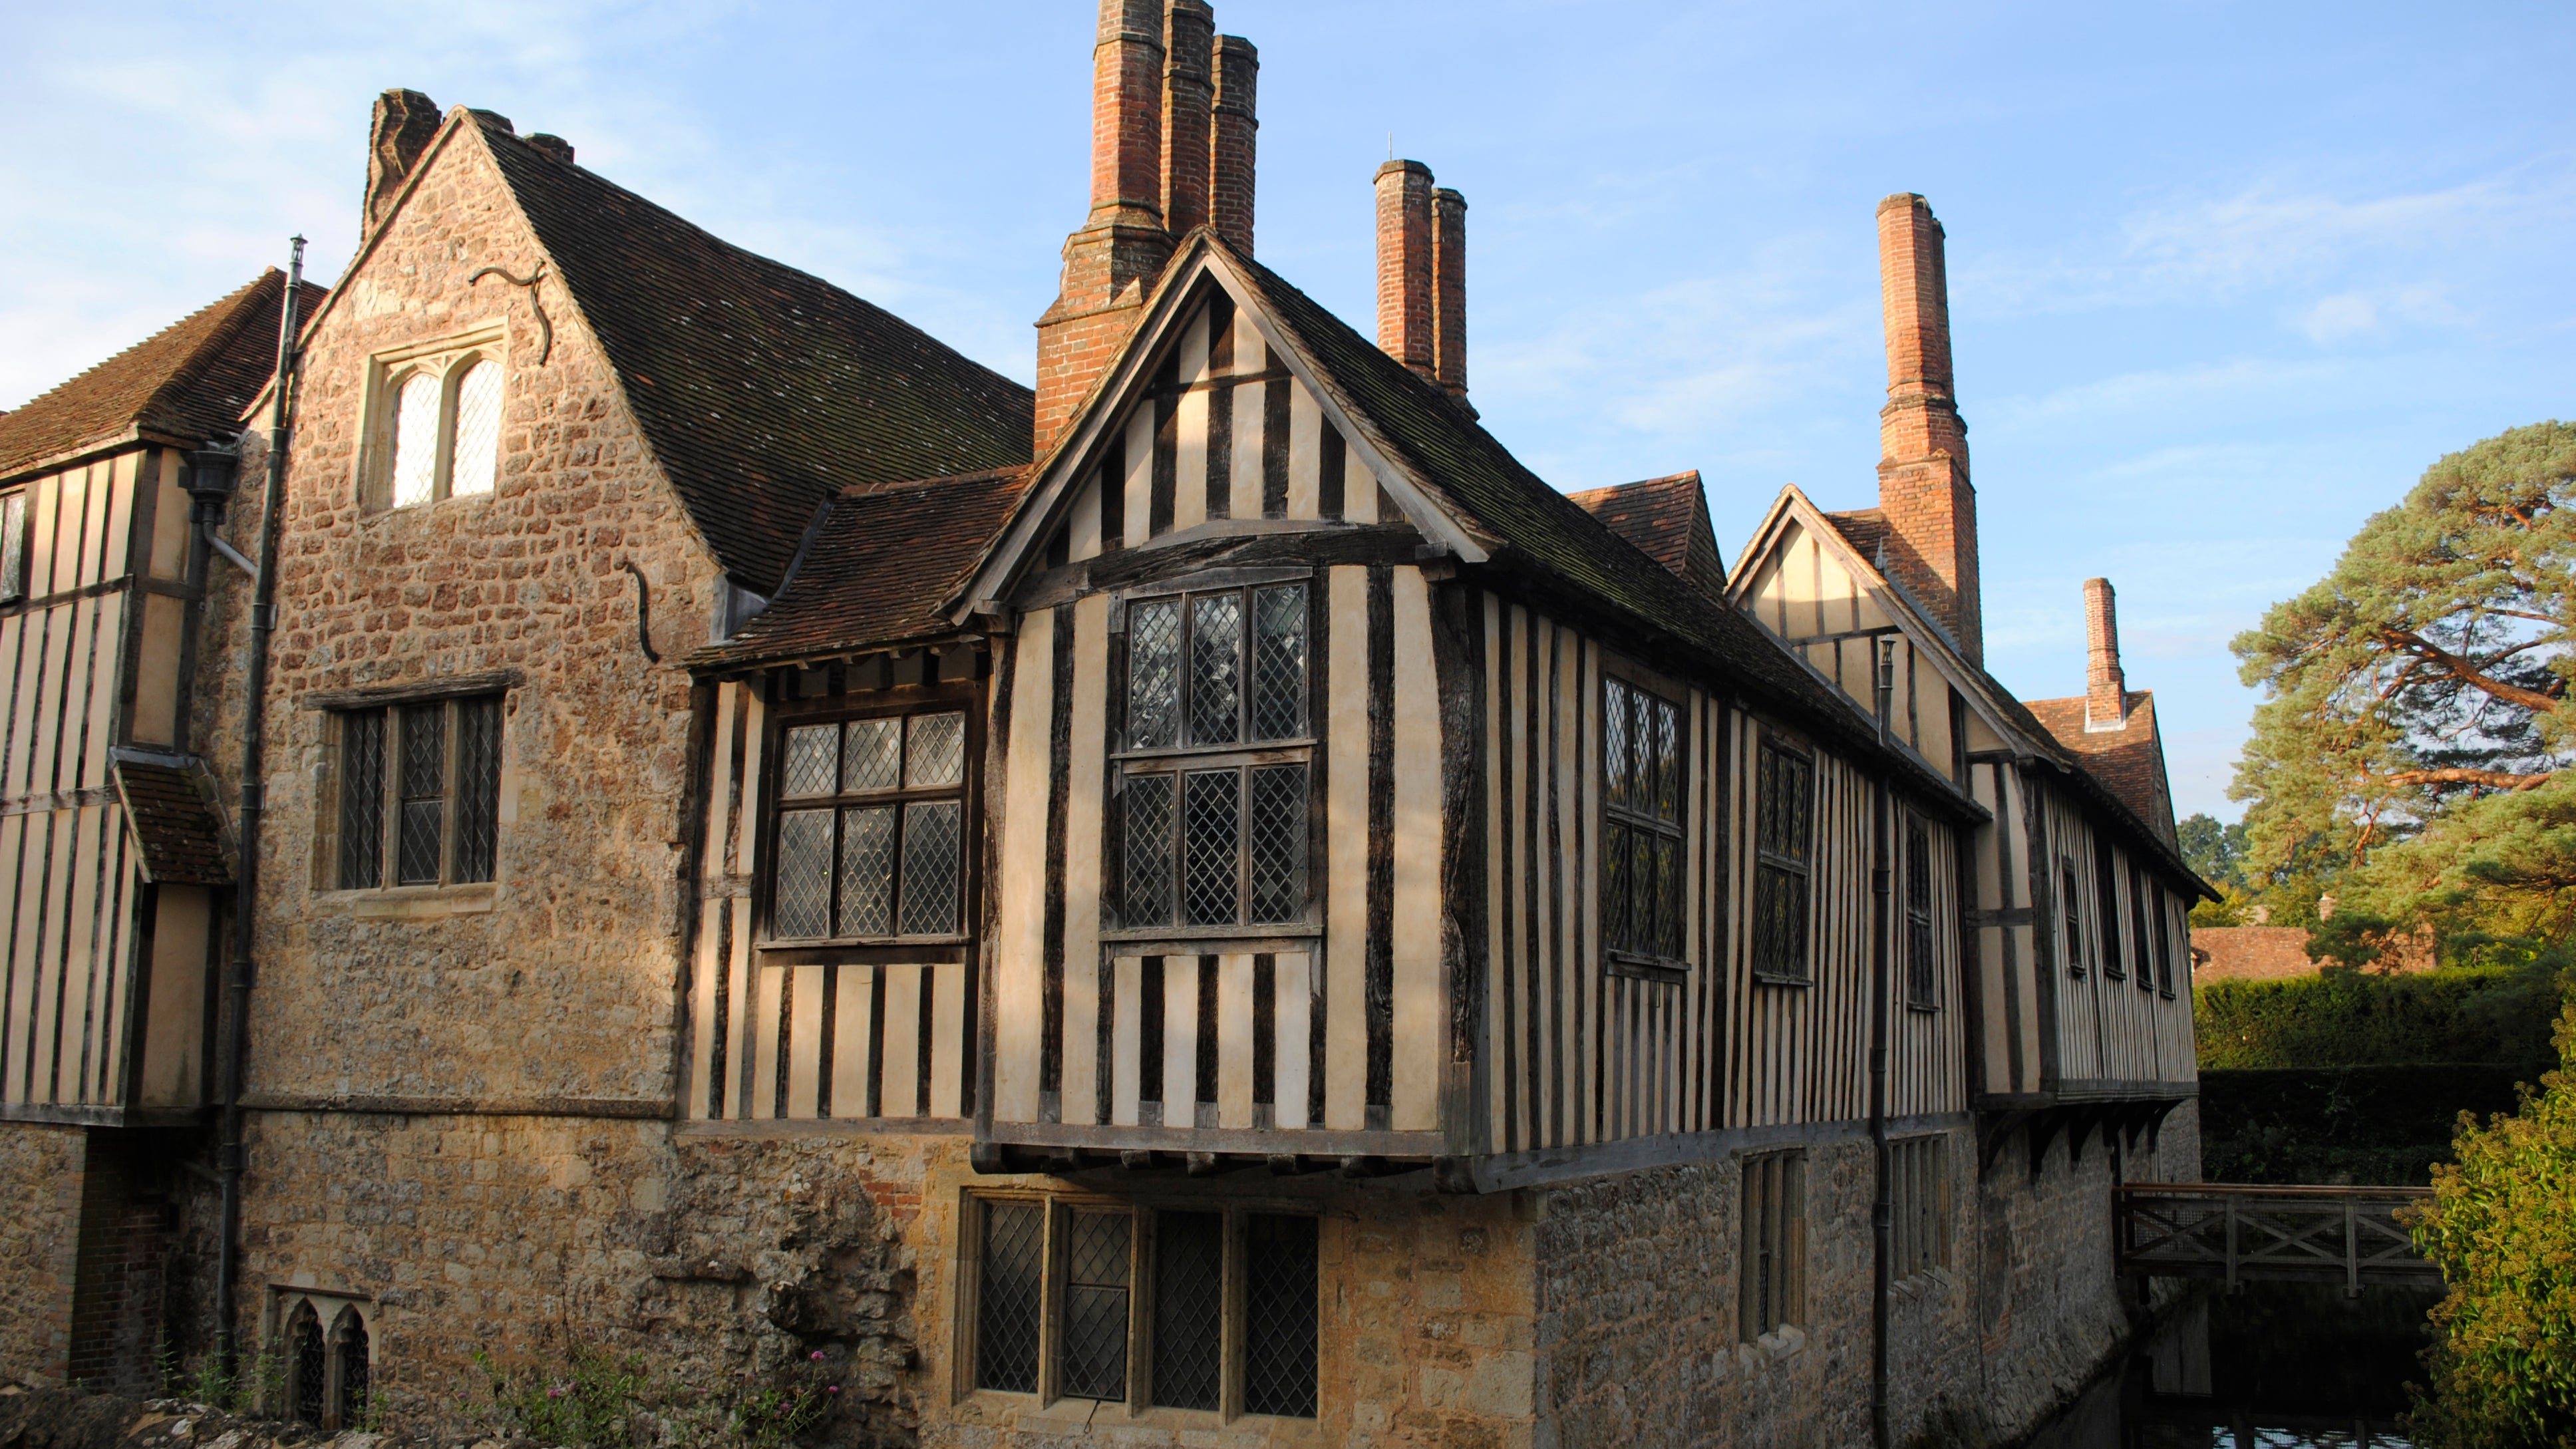 The north-east corner of Ightham Mote glows in autumn sunlight